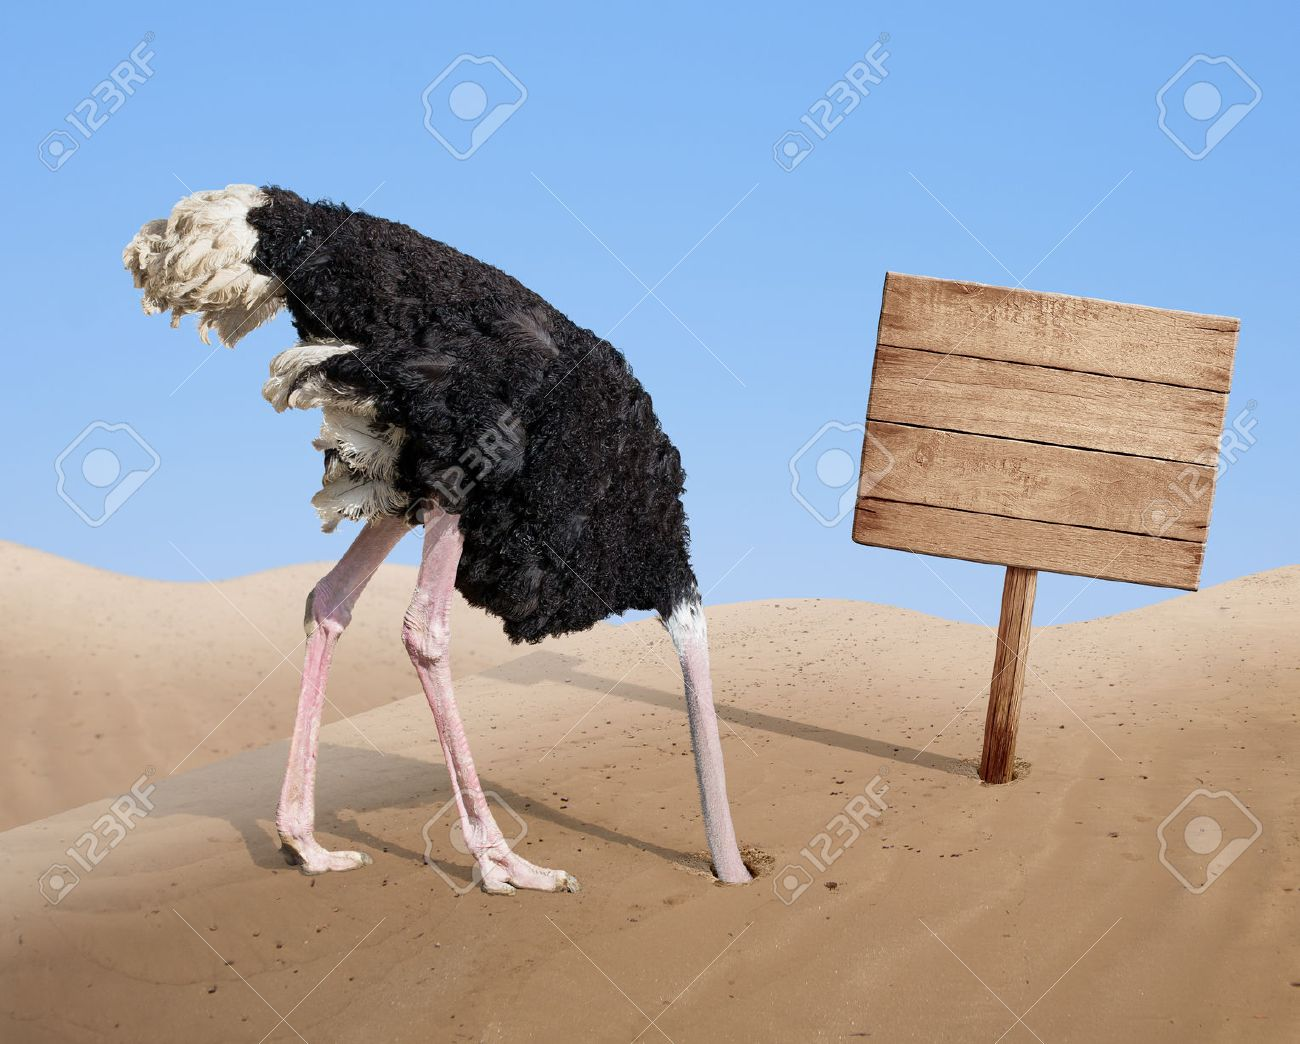 scared ostrich burying head in sand near standing blank wooden signboard - 32233160